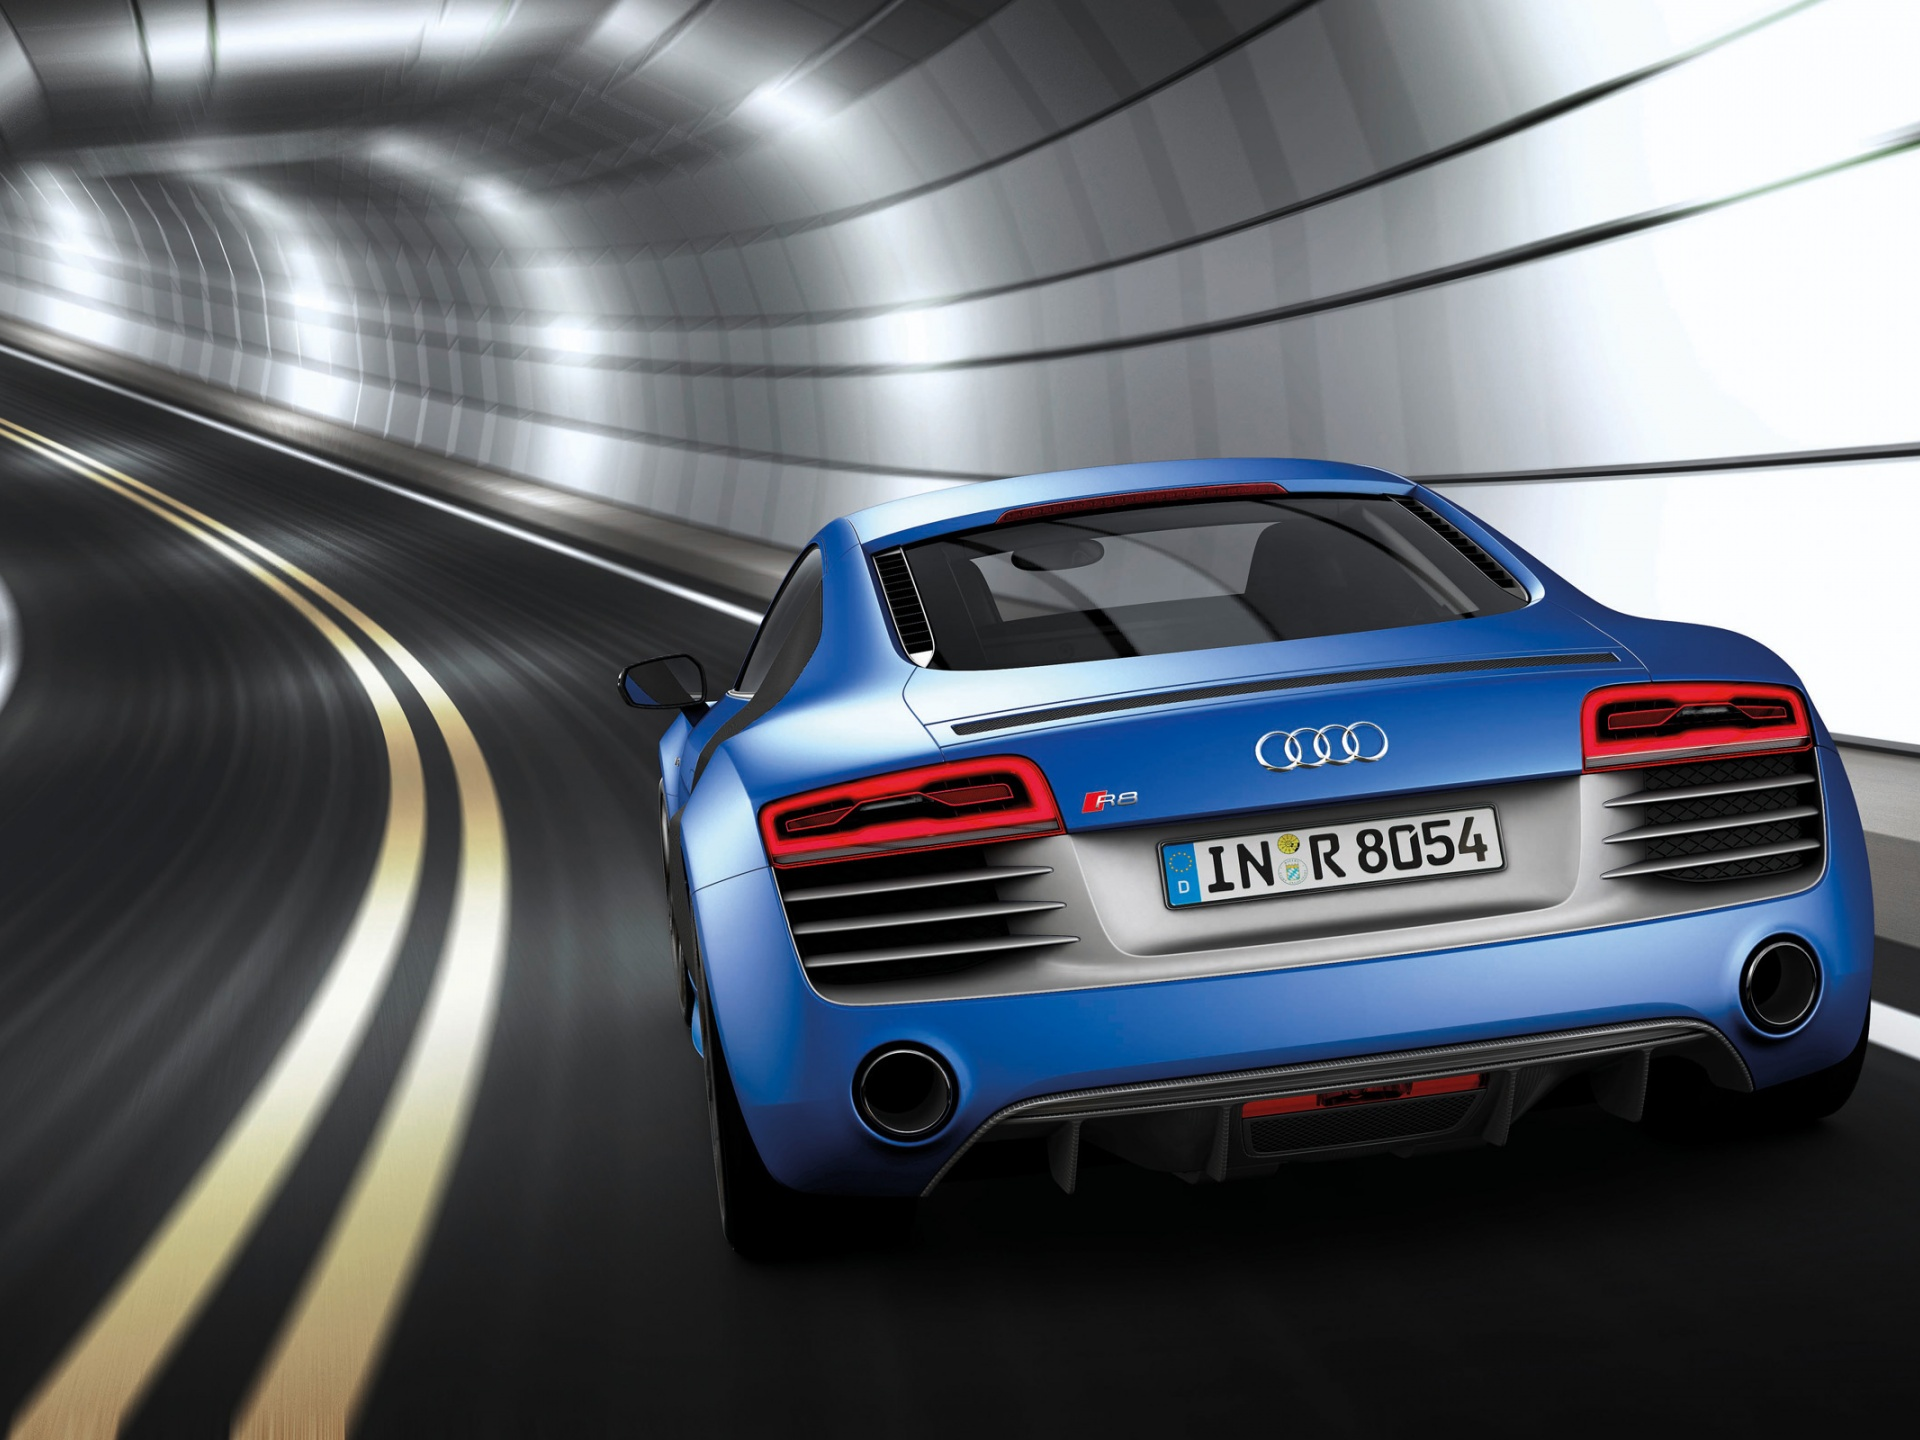 click to free download the wallpaper--Top Cars Pics of Audi R8, a Blue and Fast Car in Tunnel, Speed is Never at Loss 1920X1440 free wallpaper download